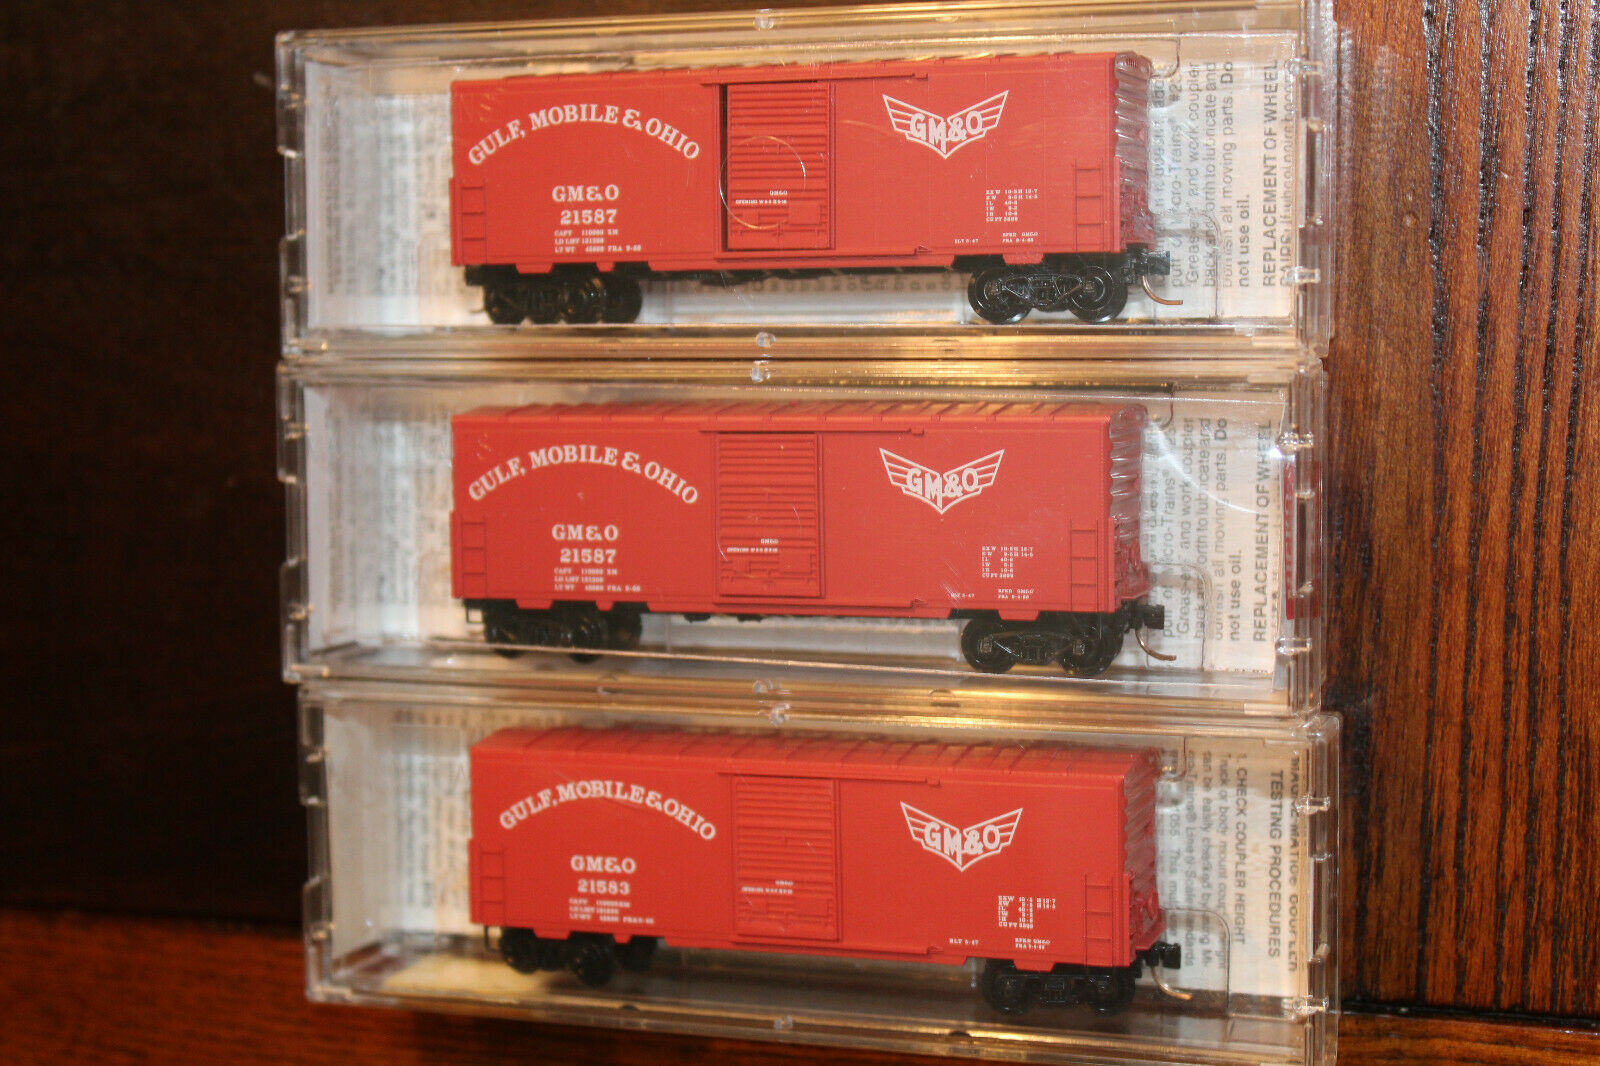 N SCALE LOT OF 3 GULF, MOBILE & OHIO - 40' STANDARD BOX CARS ,  BY MICRO TRAINS